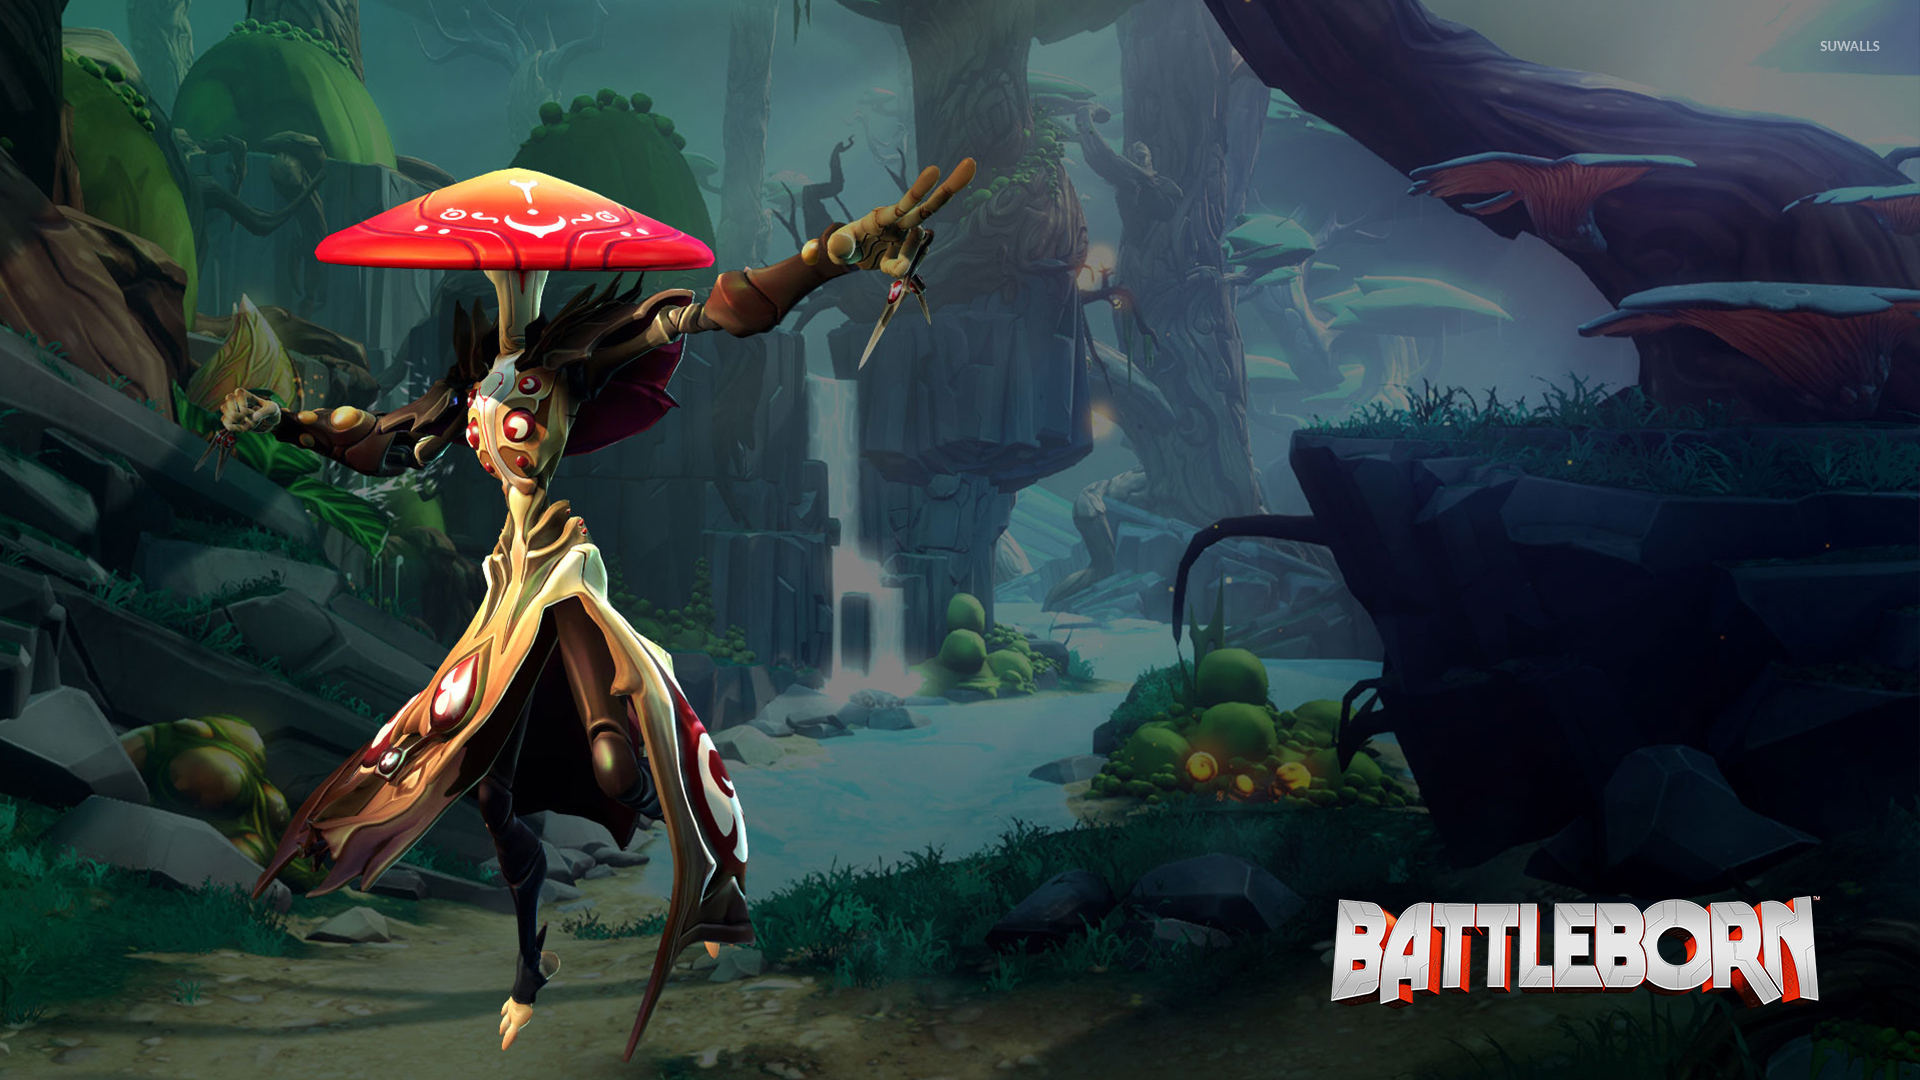 Miko In The Forest Battleborn Wallpaper Game Wallpapers 50000